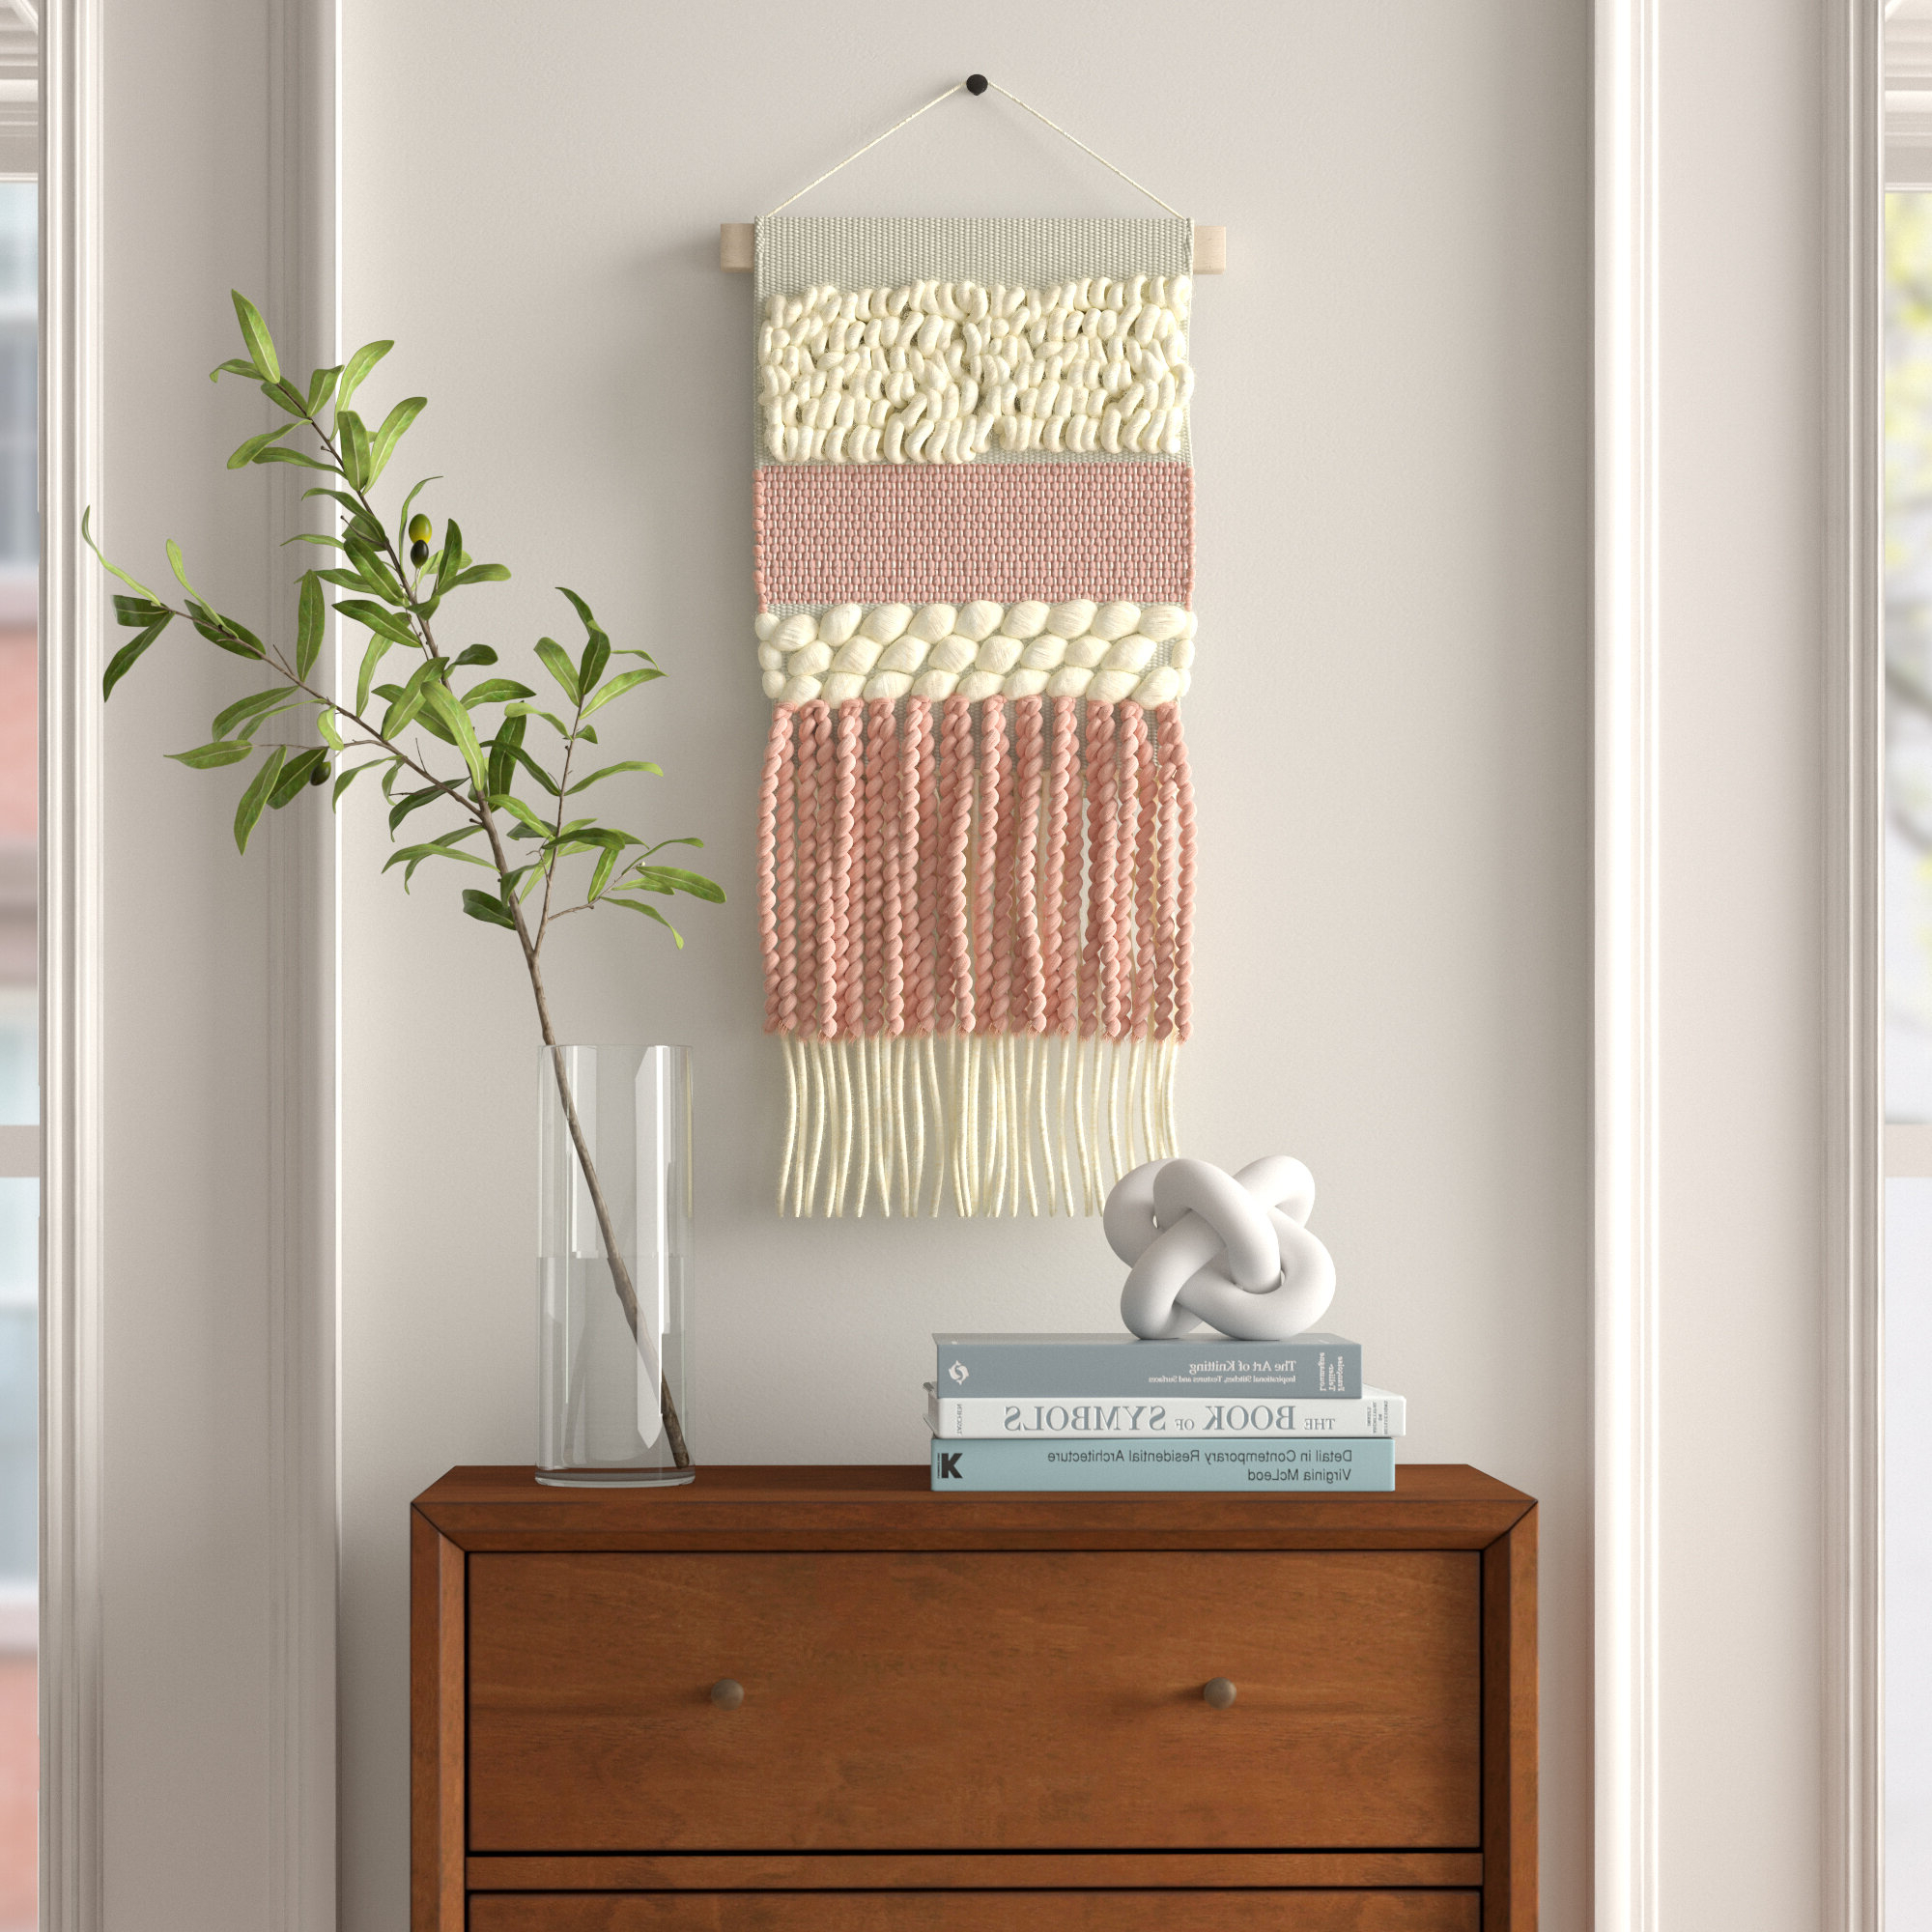 Blended Fabric Teresina Wool And Viscose Wall Hangings With Hanging Accessories Included With Regard To Most Up To Date Rod Tan Tapestries You'll Love In (View 11 of 20)